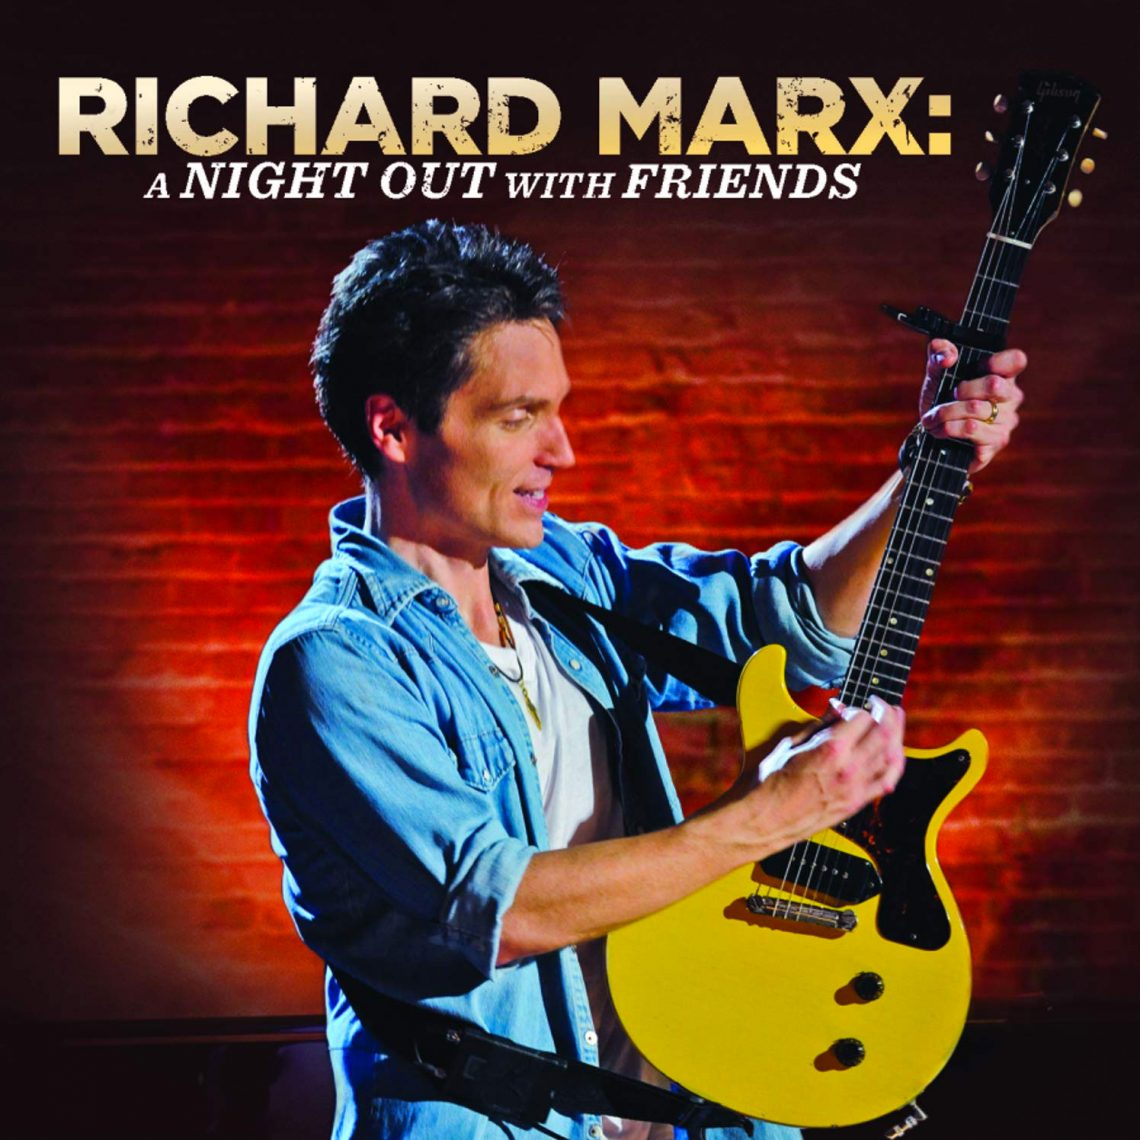 Richard Marx - A Night Out With Friends (Live)